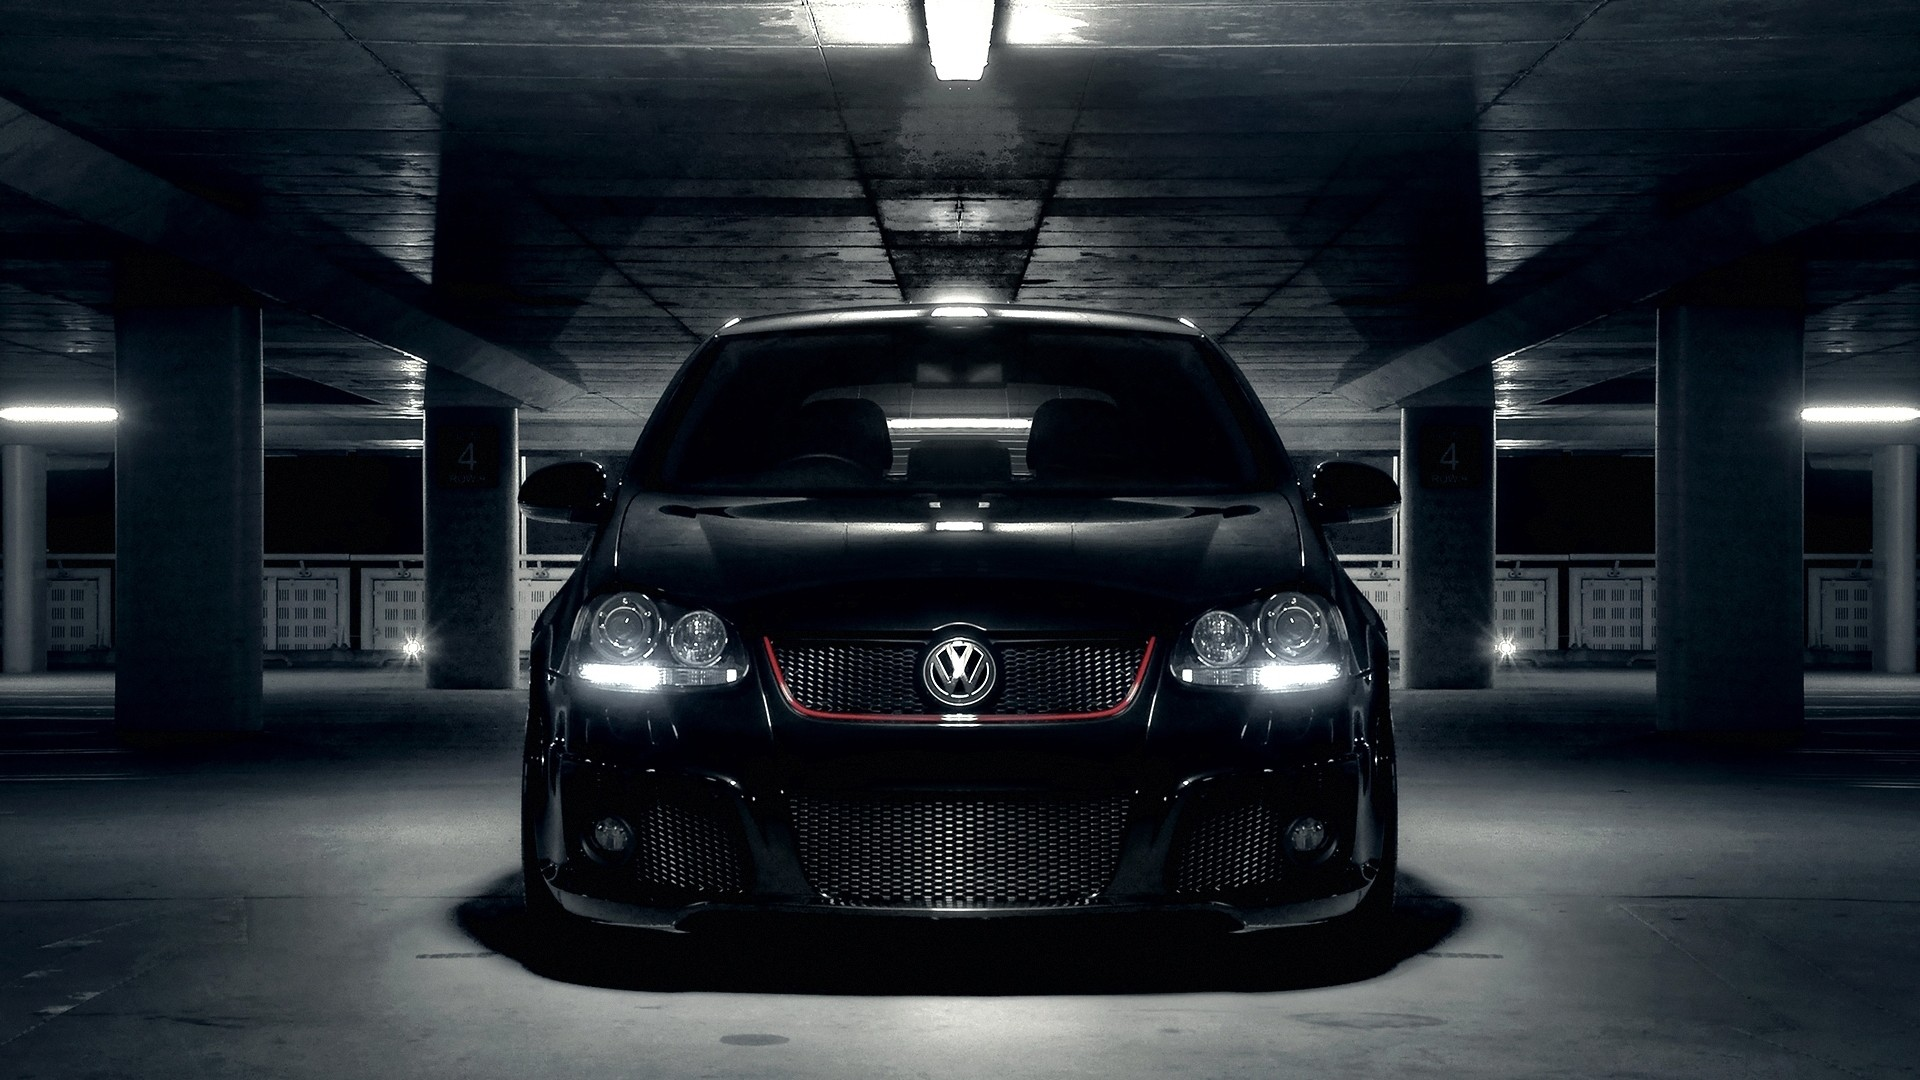 Golf Gti Wallpaper HD